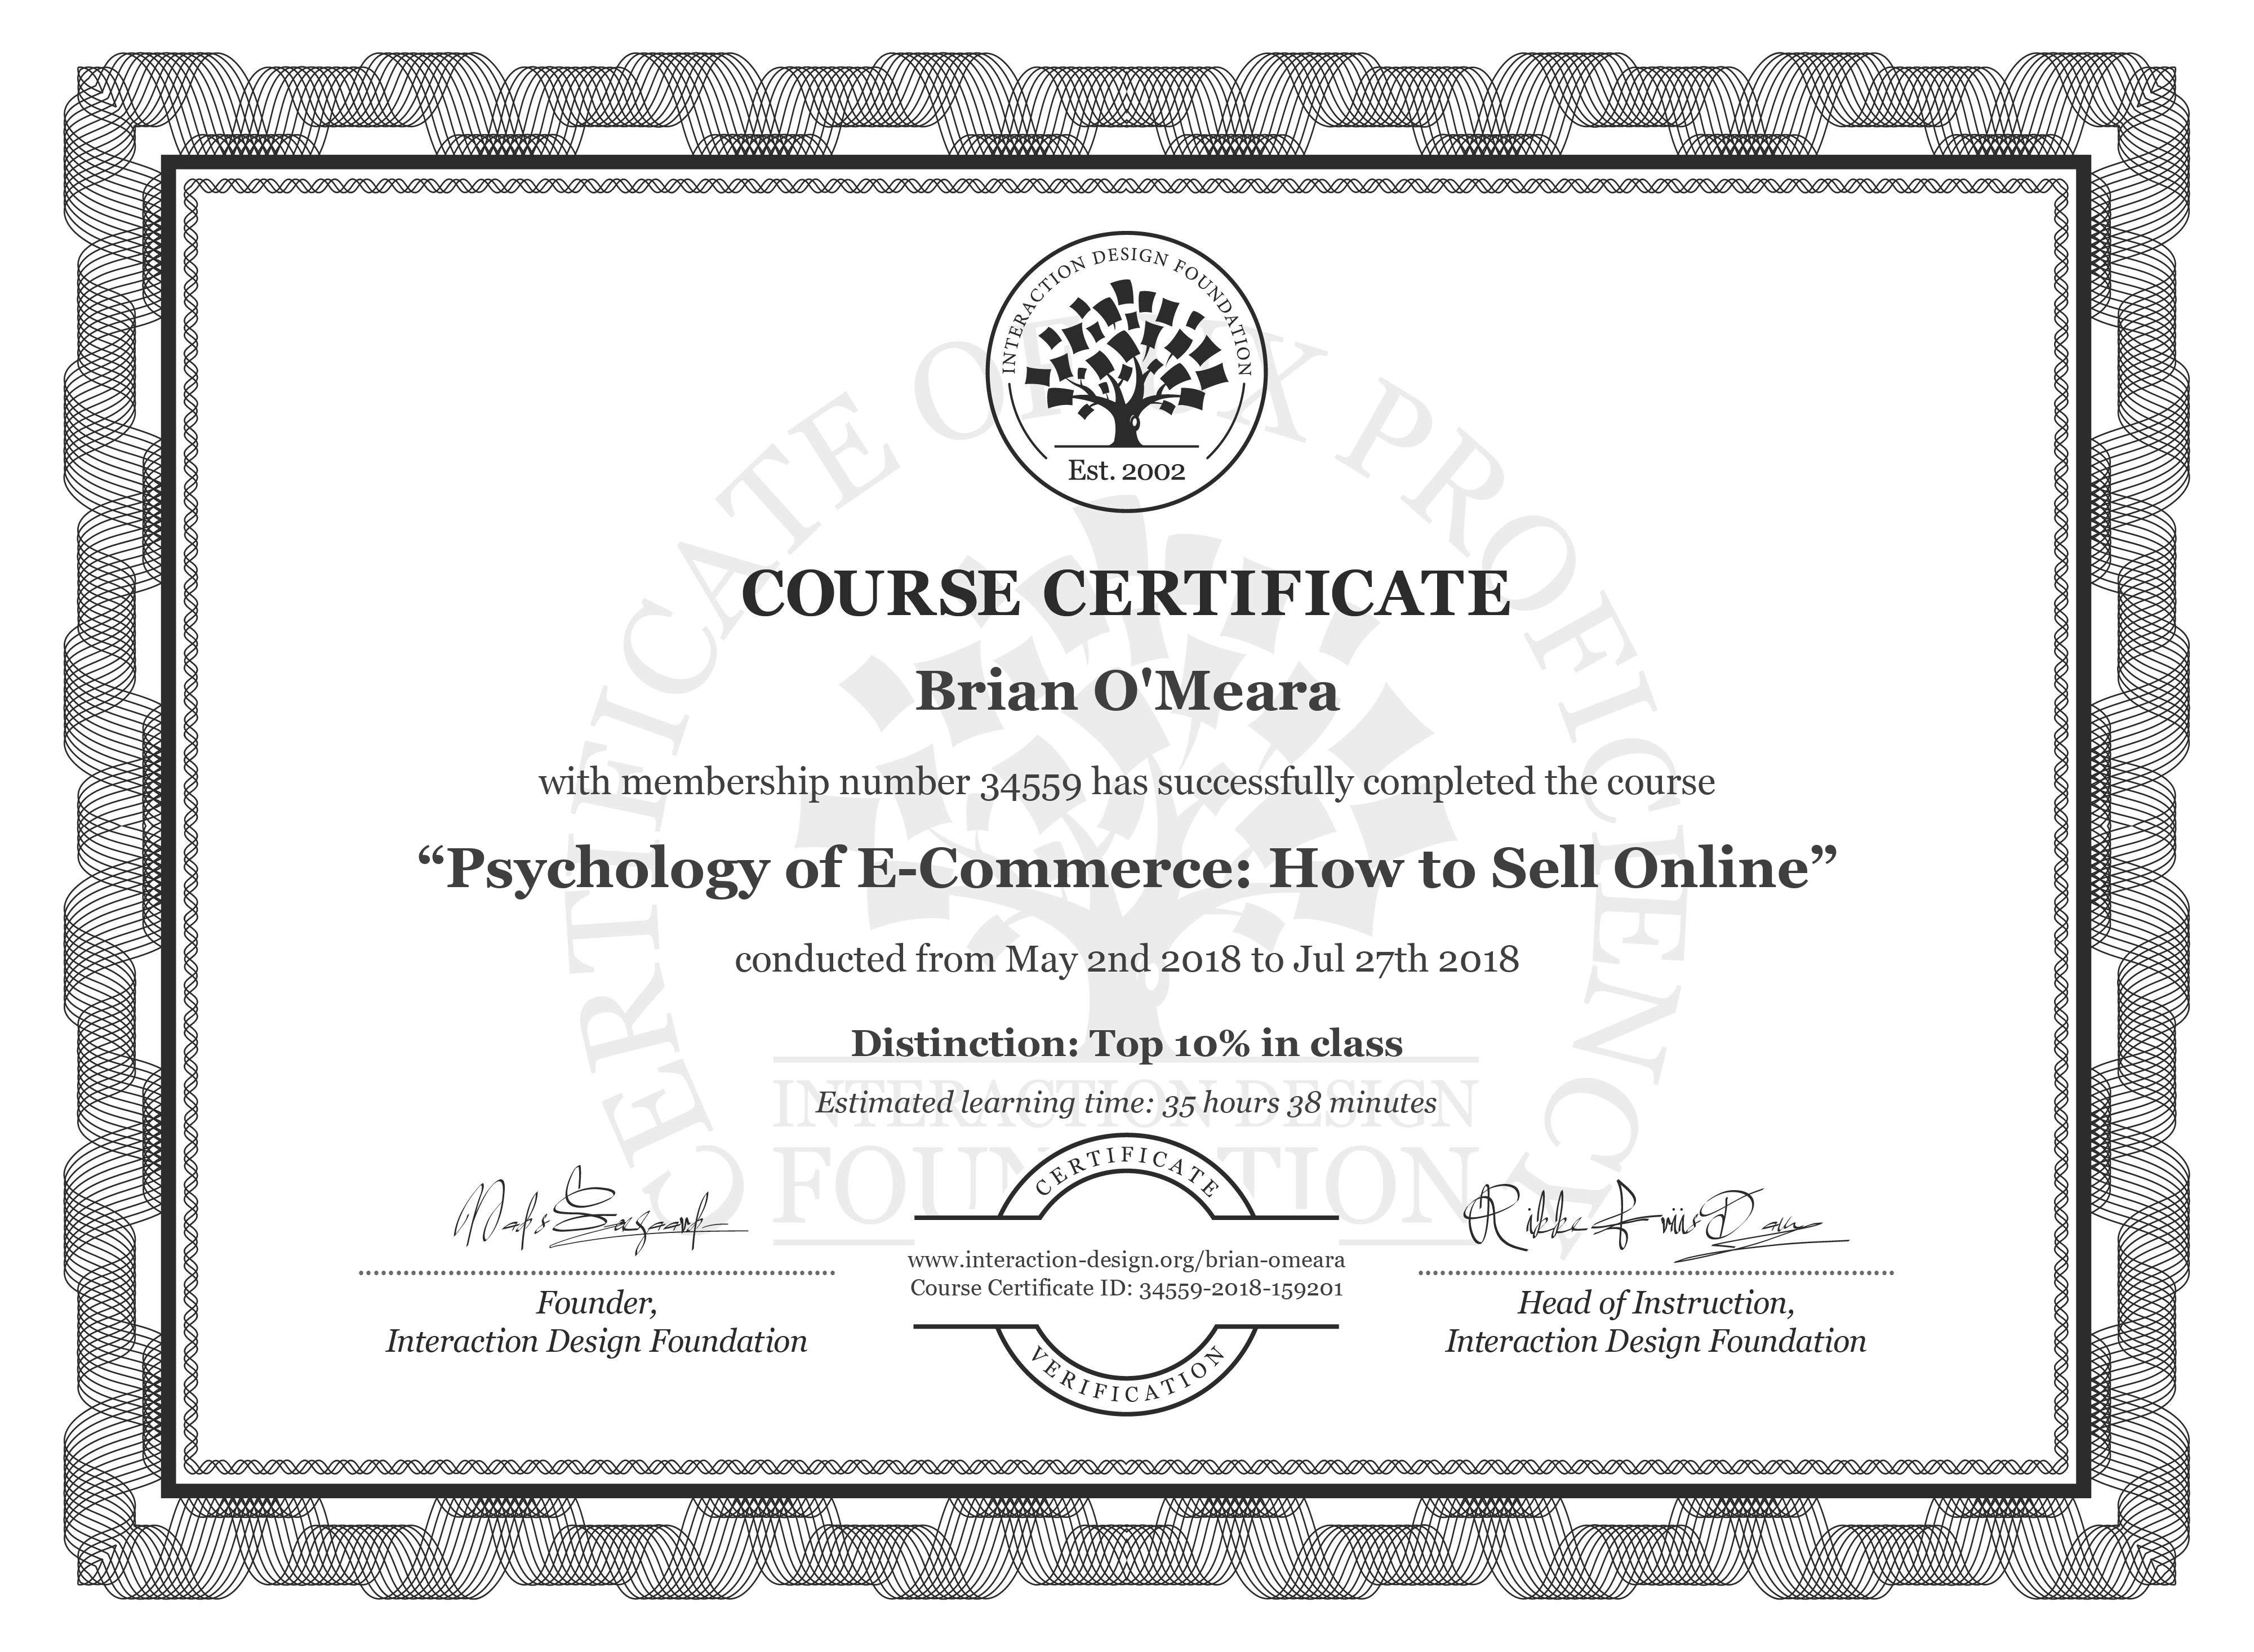 Brian O'Meara's Course Certificate: Psychology of E-Commerce: How to Sell Online